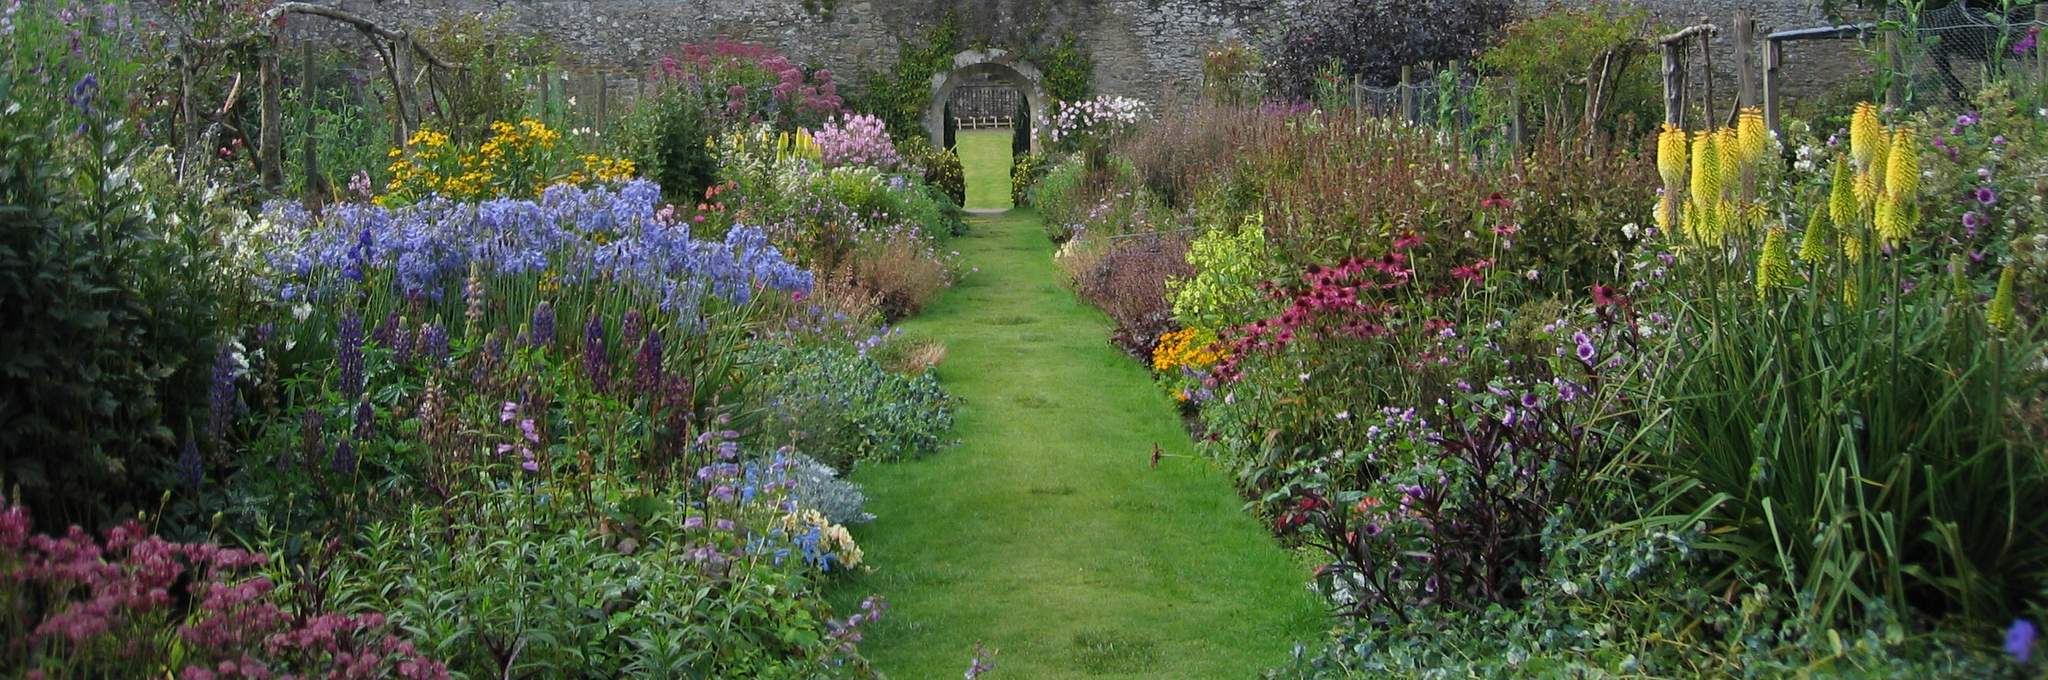 scottish gardens from the highlands to the lowlands